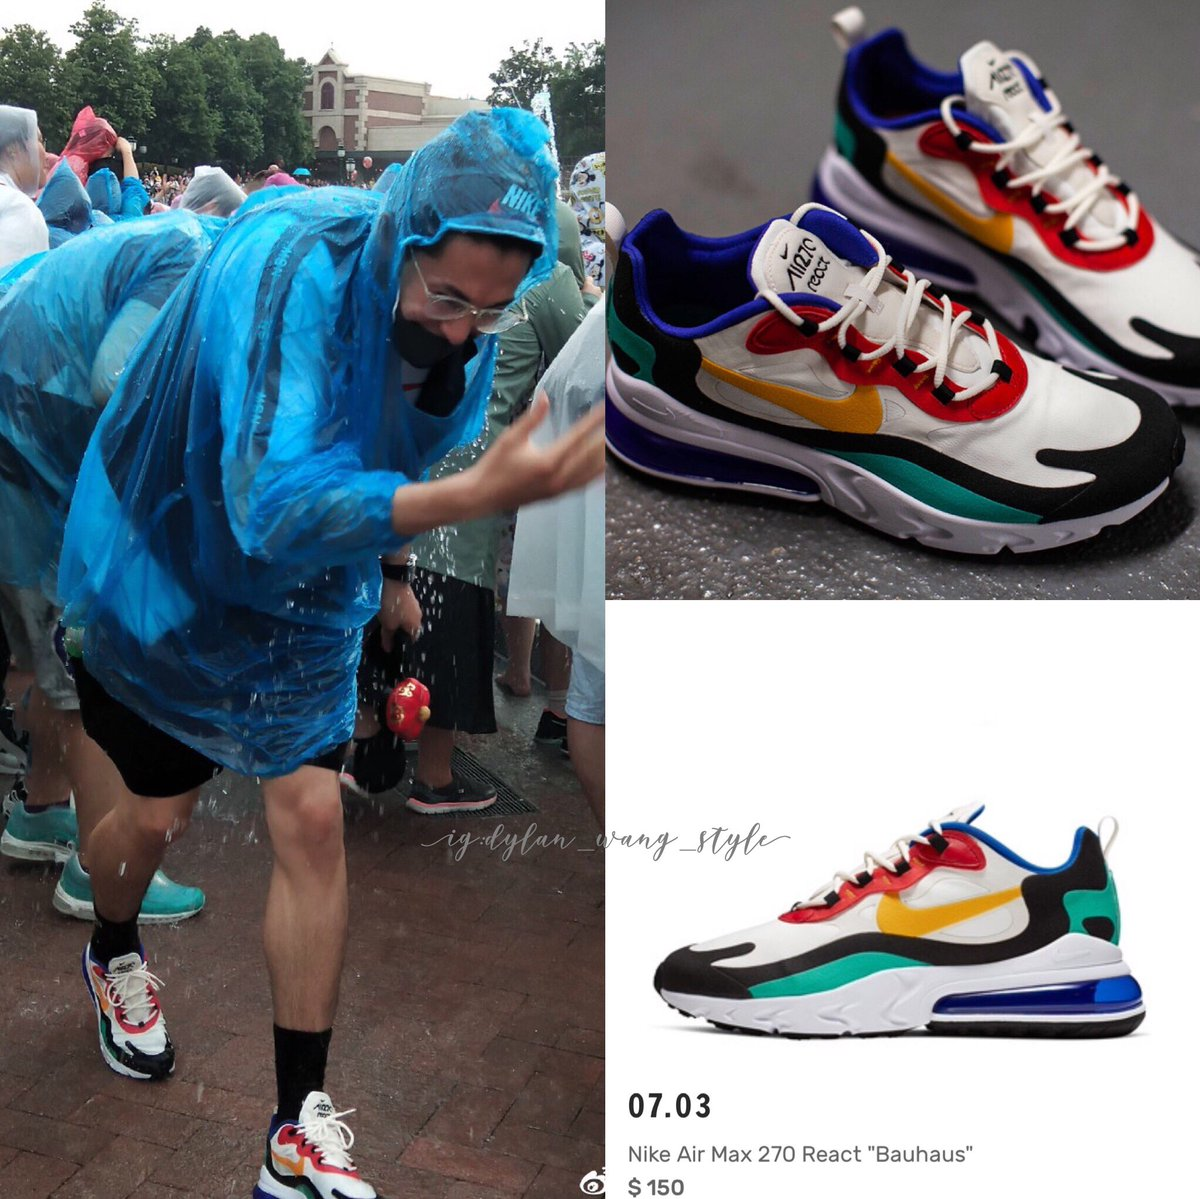 the best attitude 602b8 c99c5 dylan_wang_1220 drenched in Disney. Seen wearing these pair ...